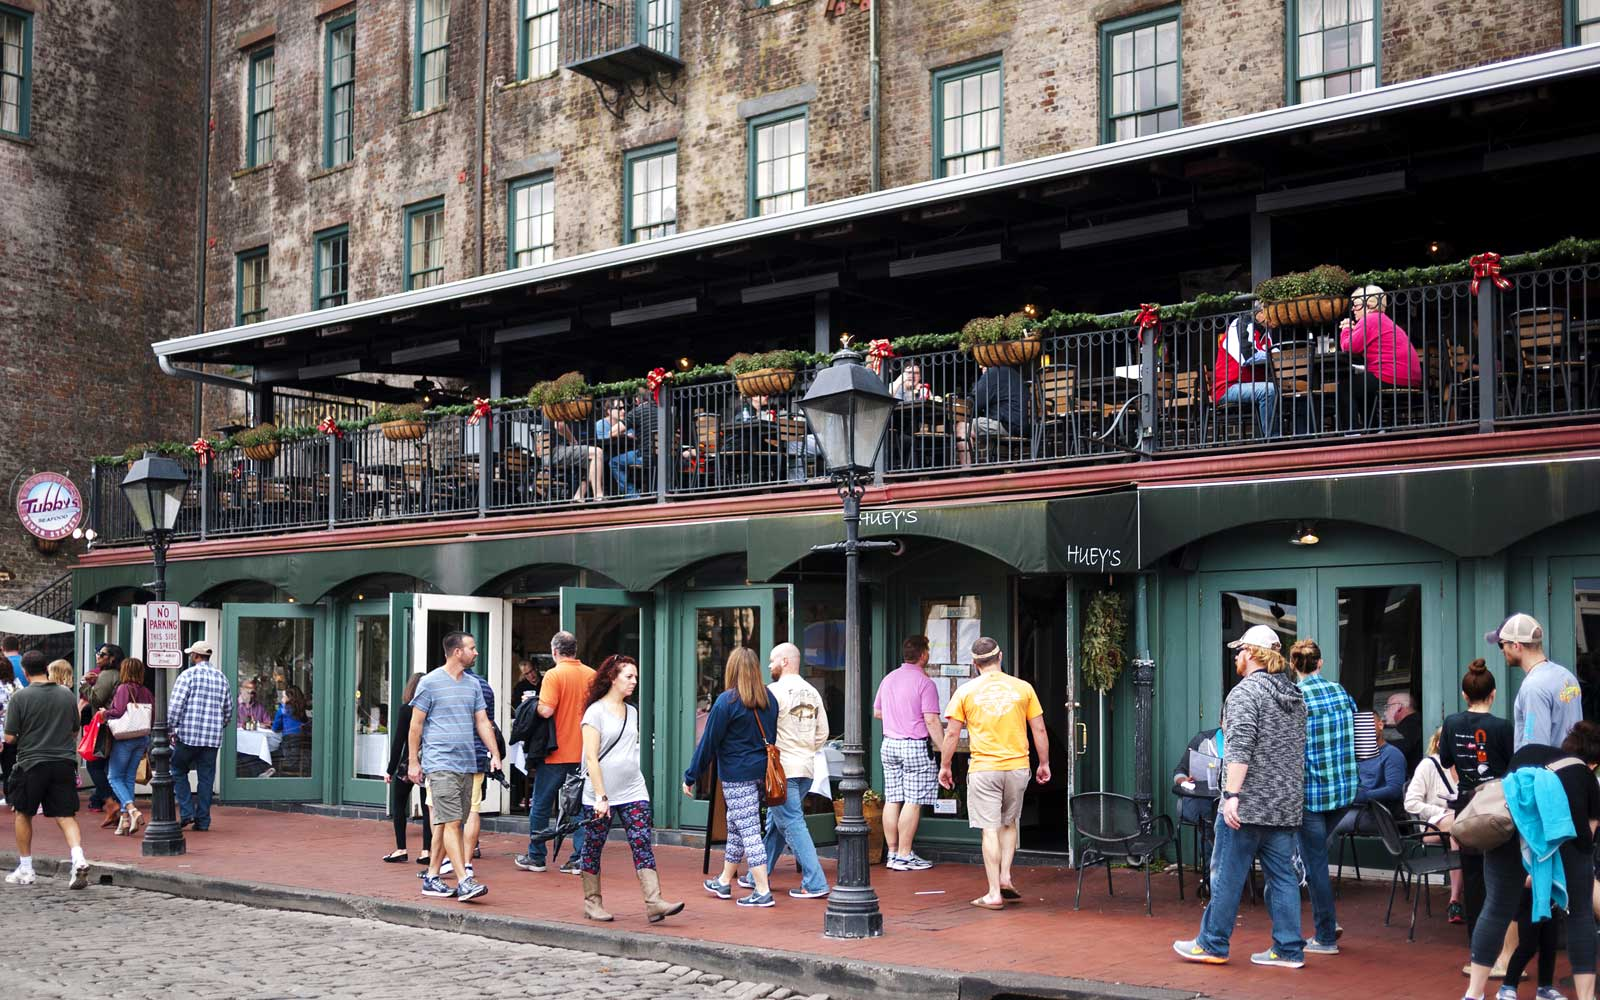 People walking on famous River Street, a cobblestone street along the south bank of the Savannah River